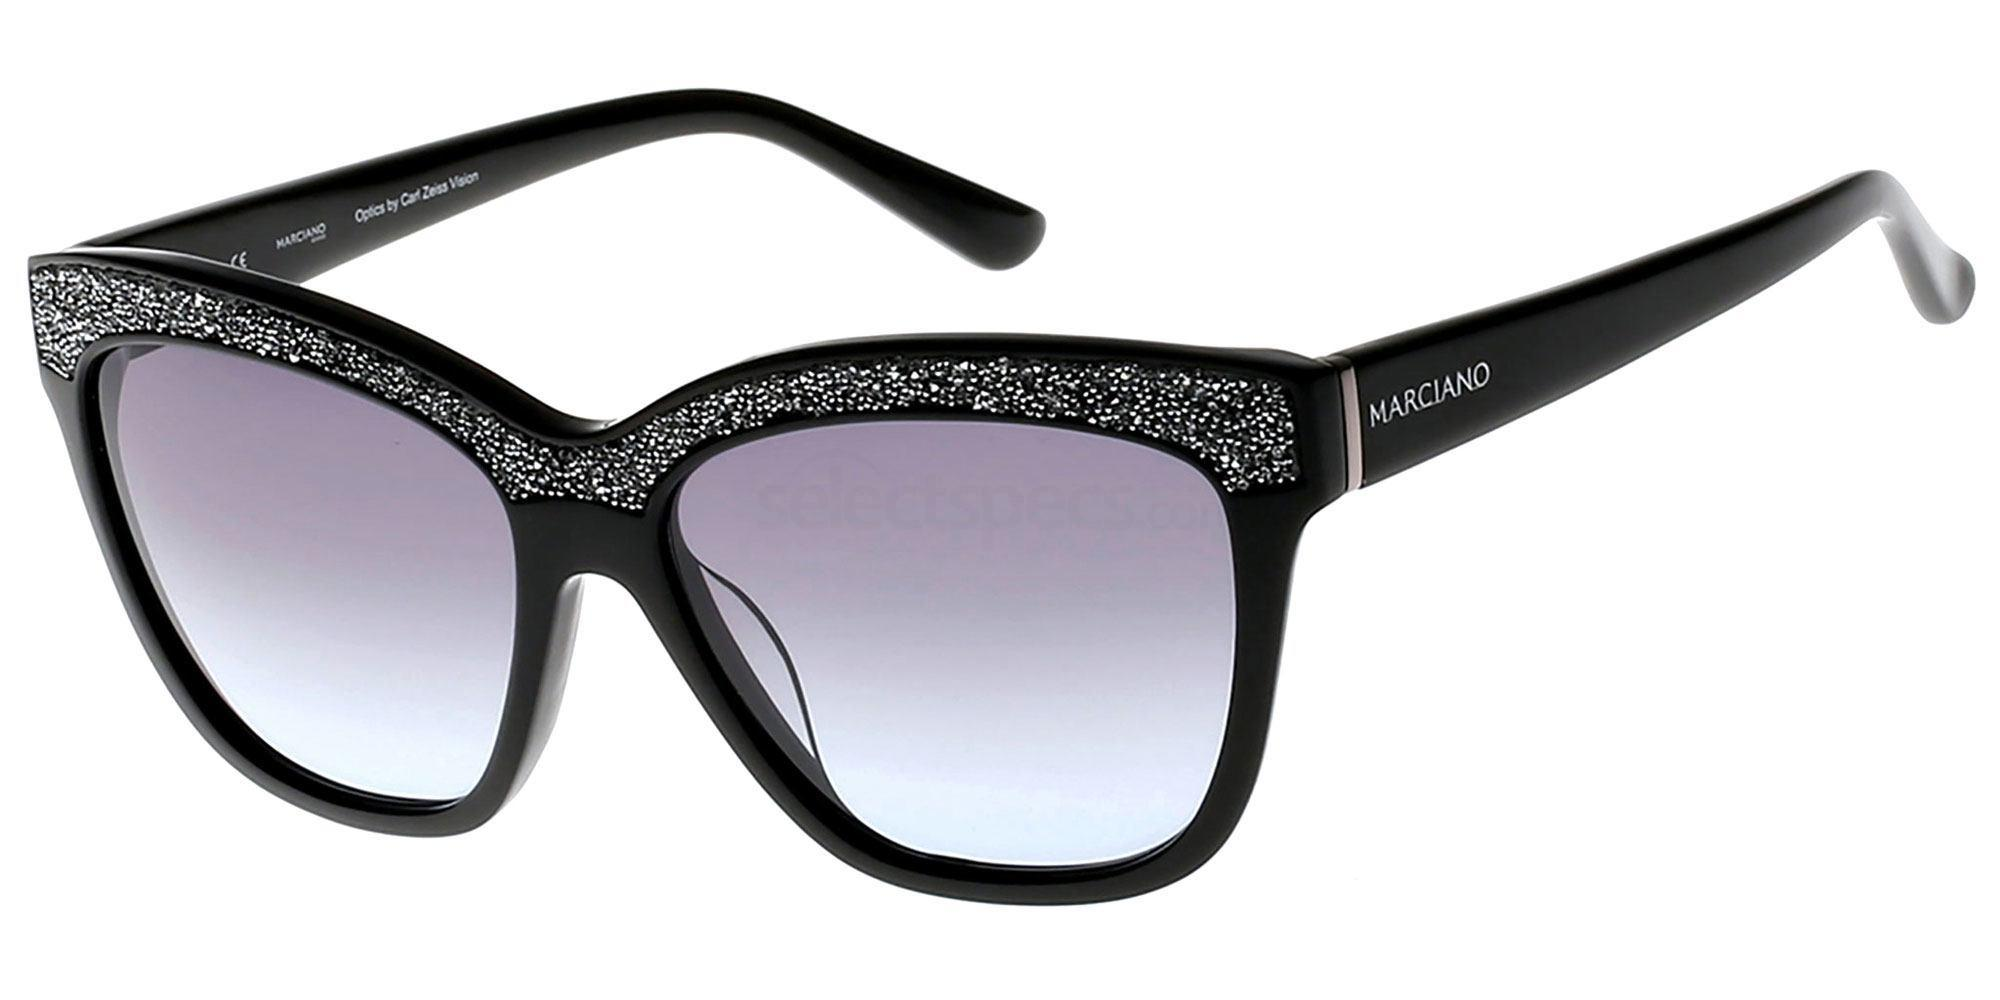 01B GM 729 Sunglasses, Guess by Marciano